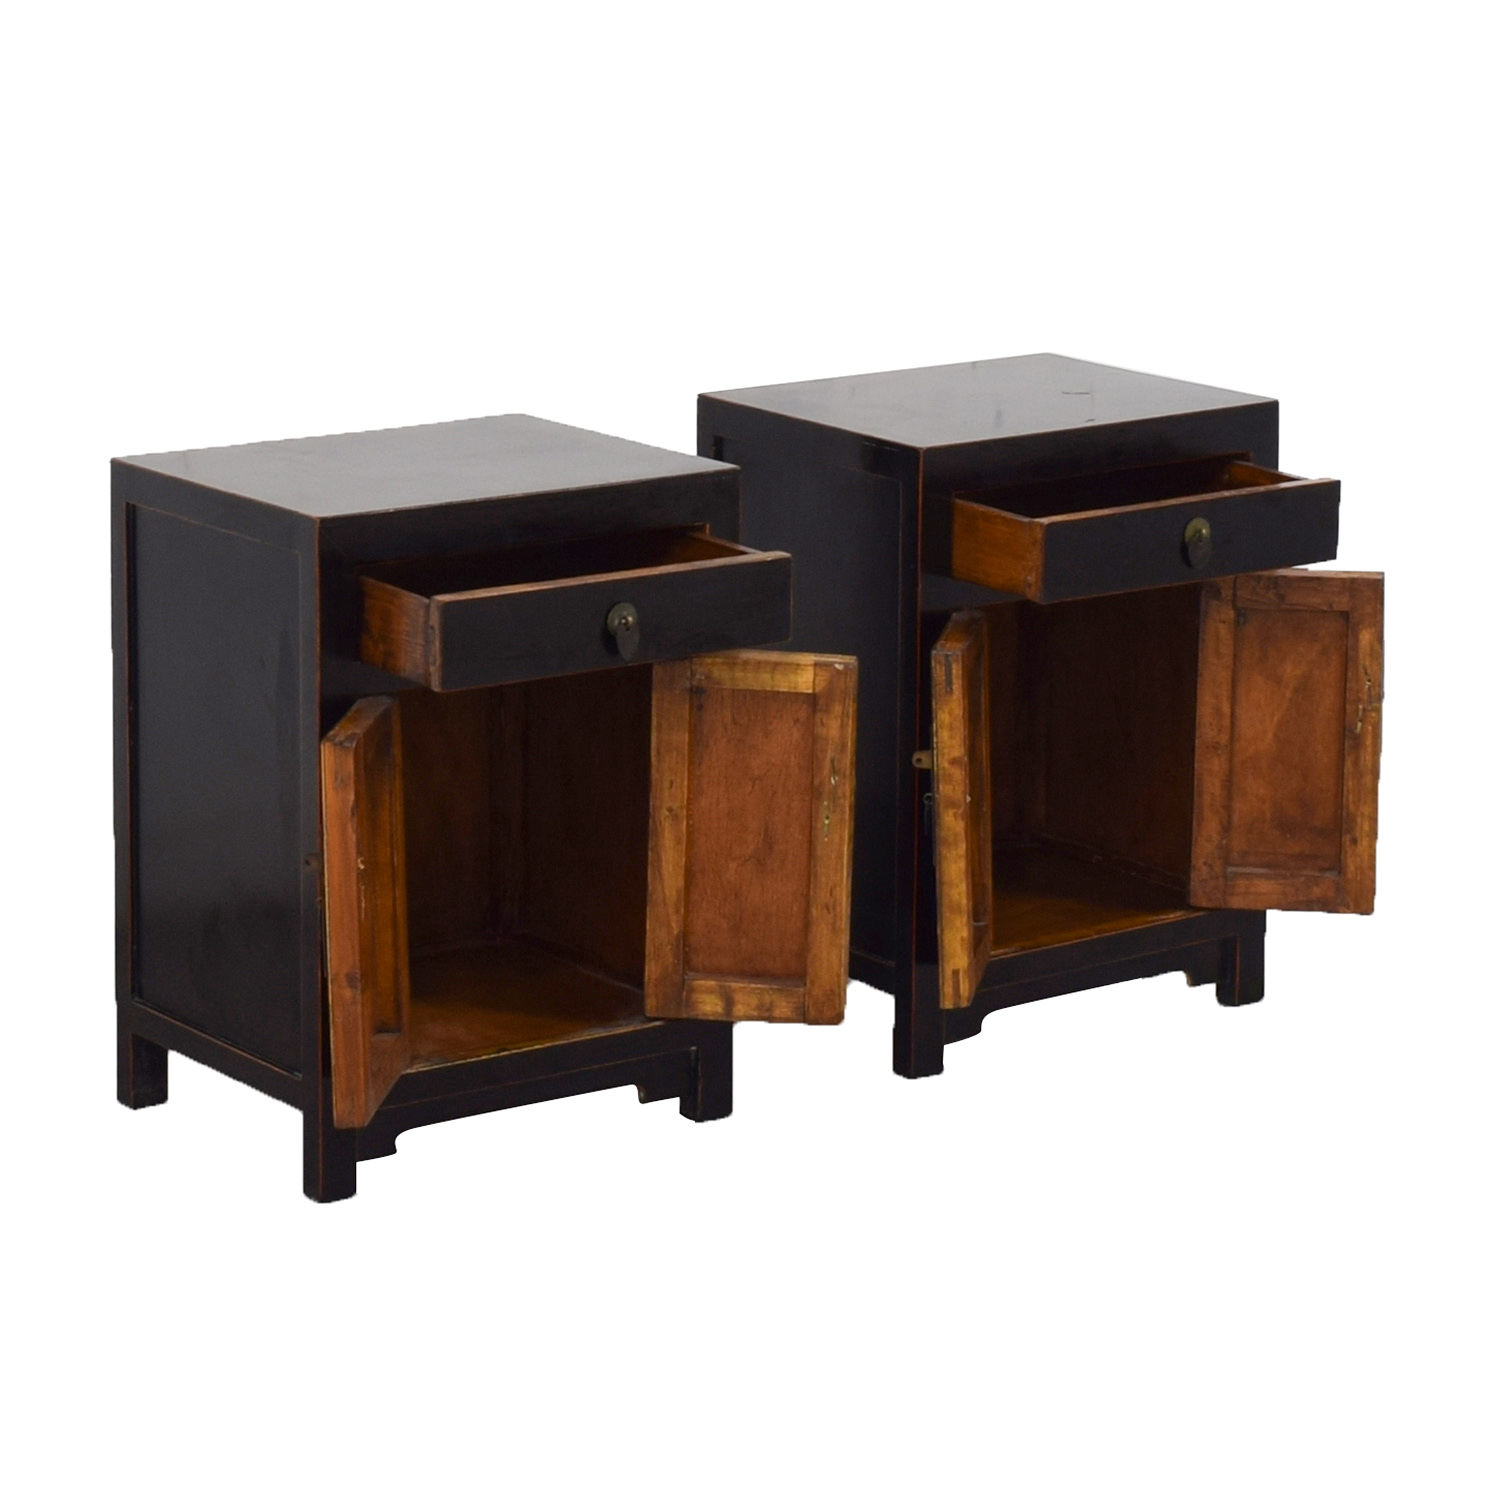 Pair of Asian Night Stands used